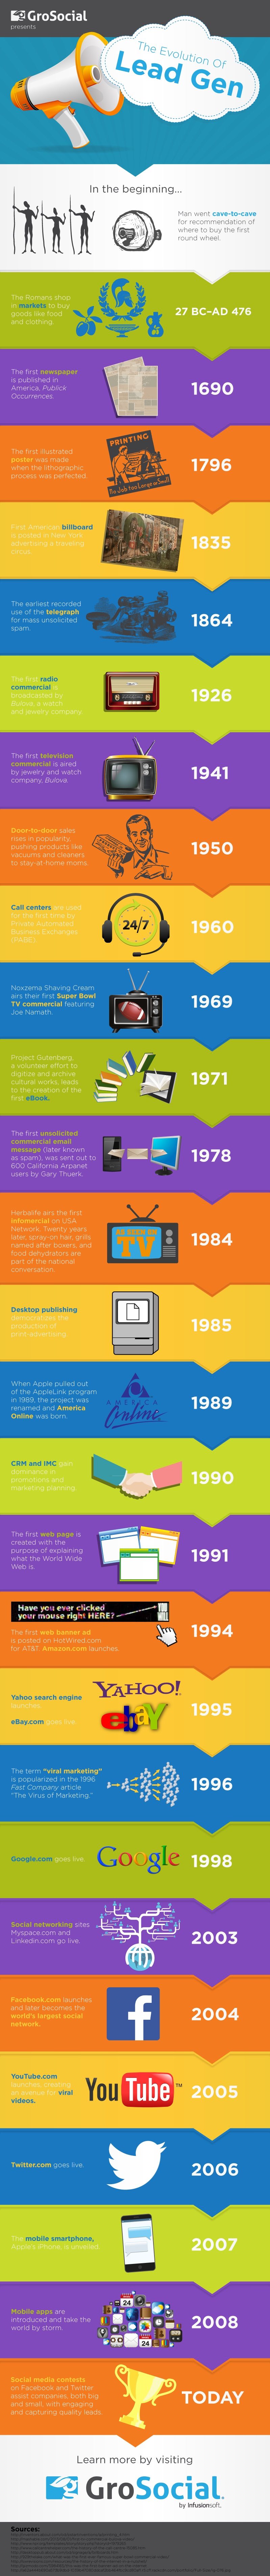 Evolution of Lead Generation